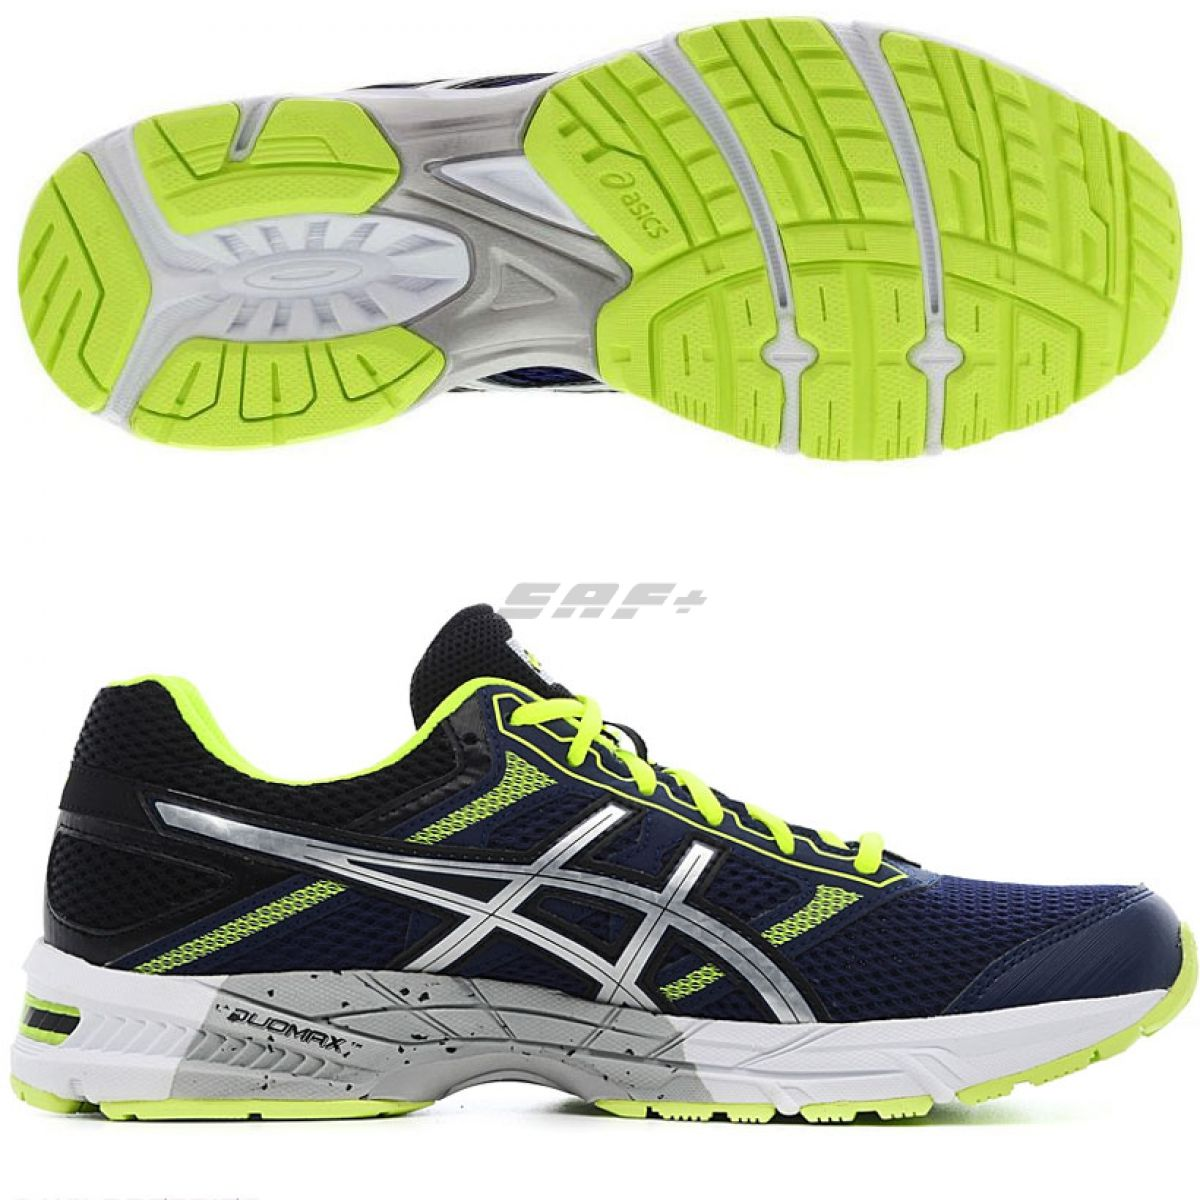 КРОССОВКИ ASICS GEL-TROUNCE 3 SR